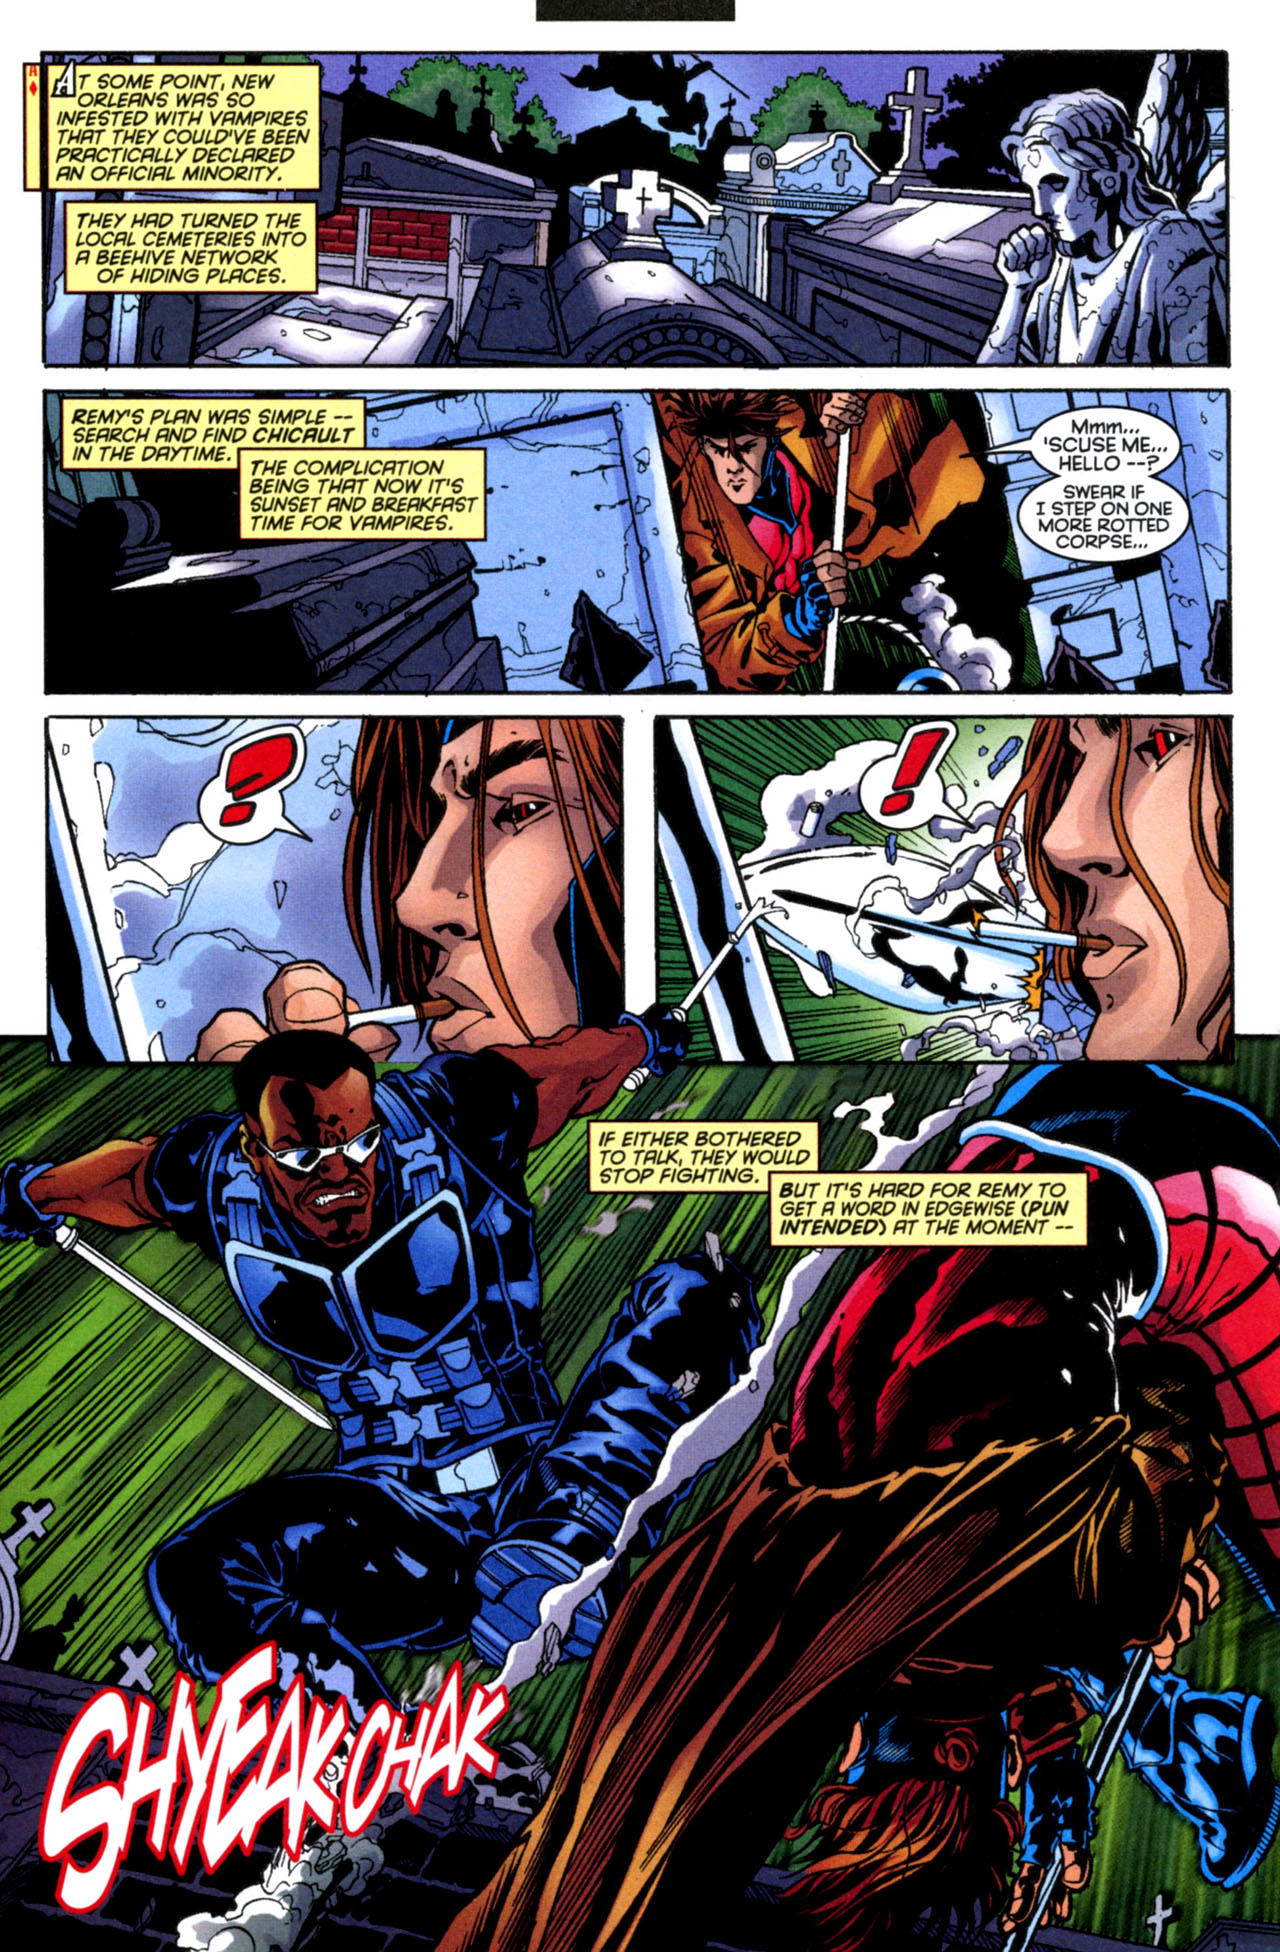 Gambit (1999) 4 Page 11